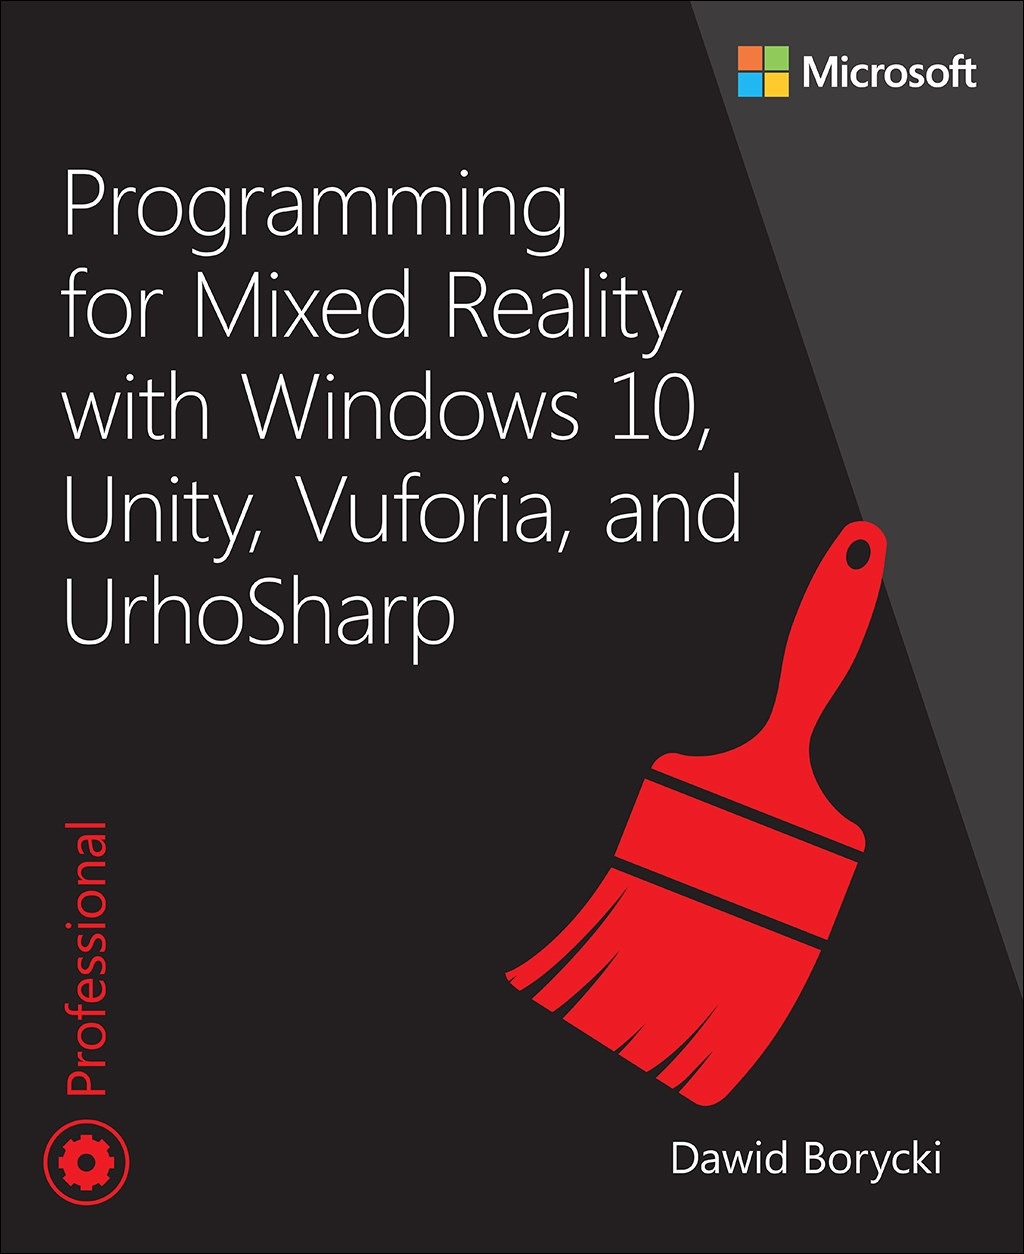 Programming for Mixed Reality with Windows 10, Unity, Vuforia, and UrhoSharp, Rough Cuts